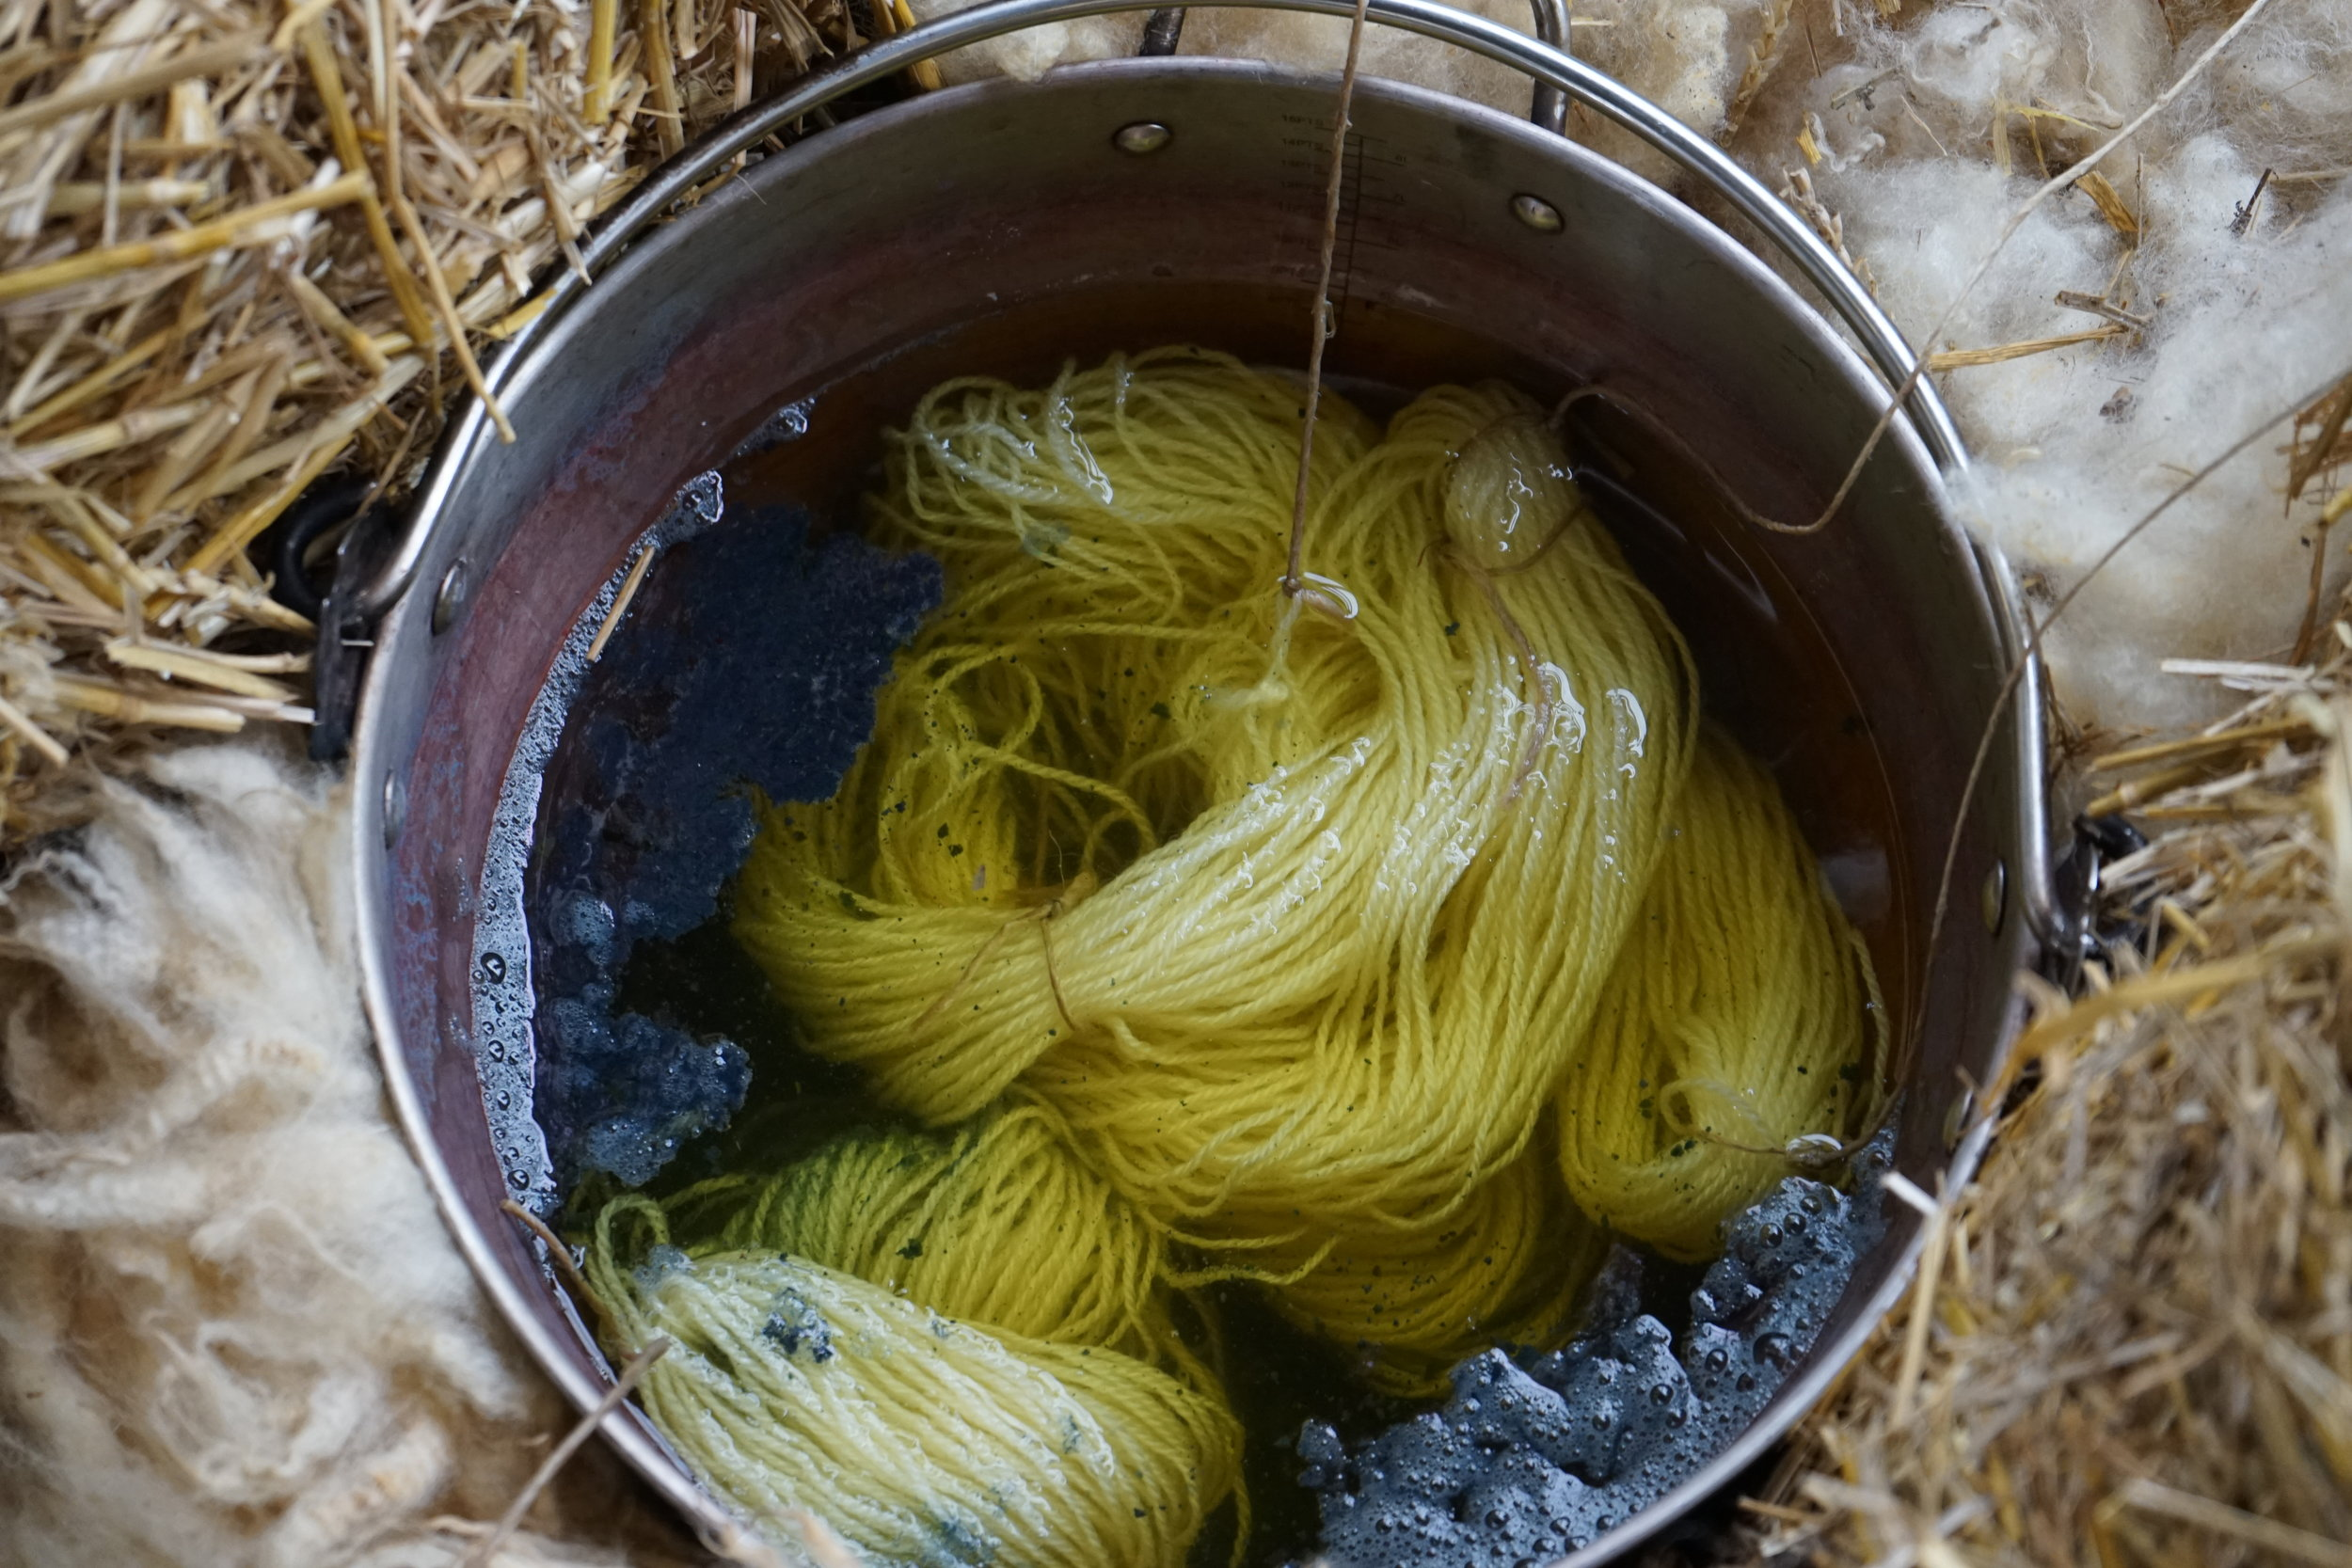 Copy of Yarn in a woad vat